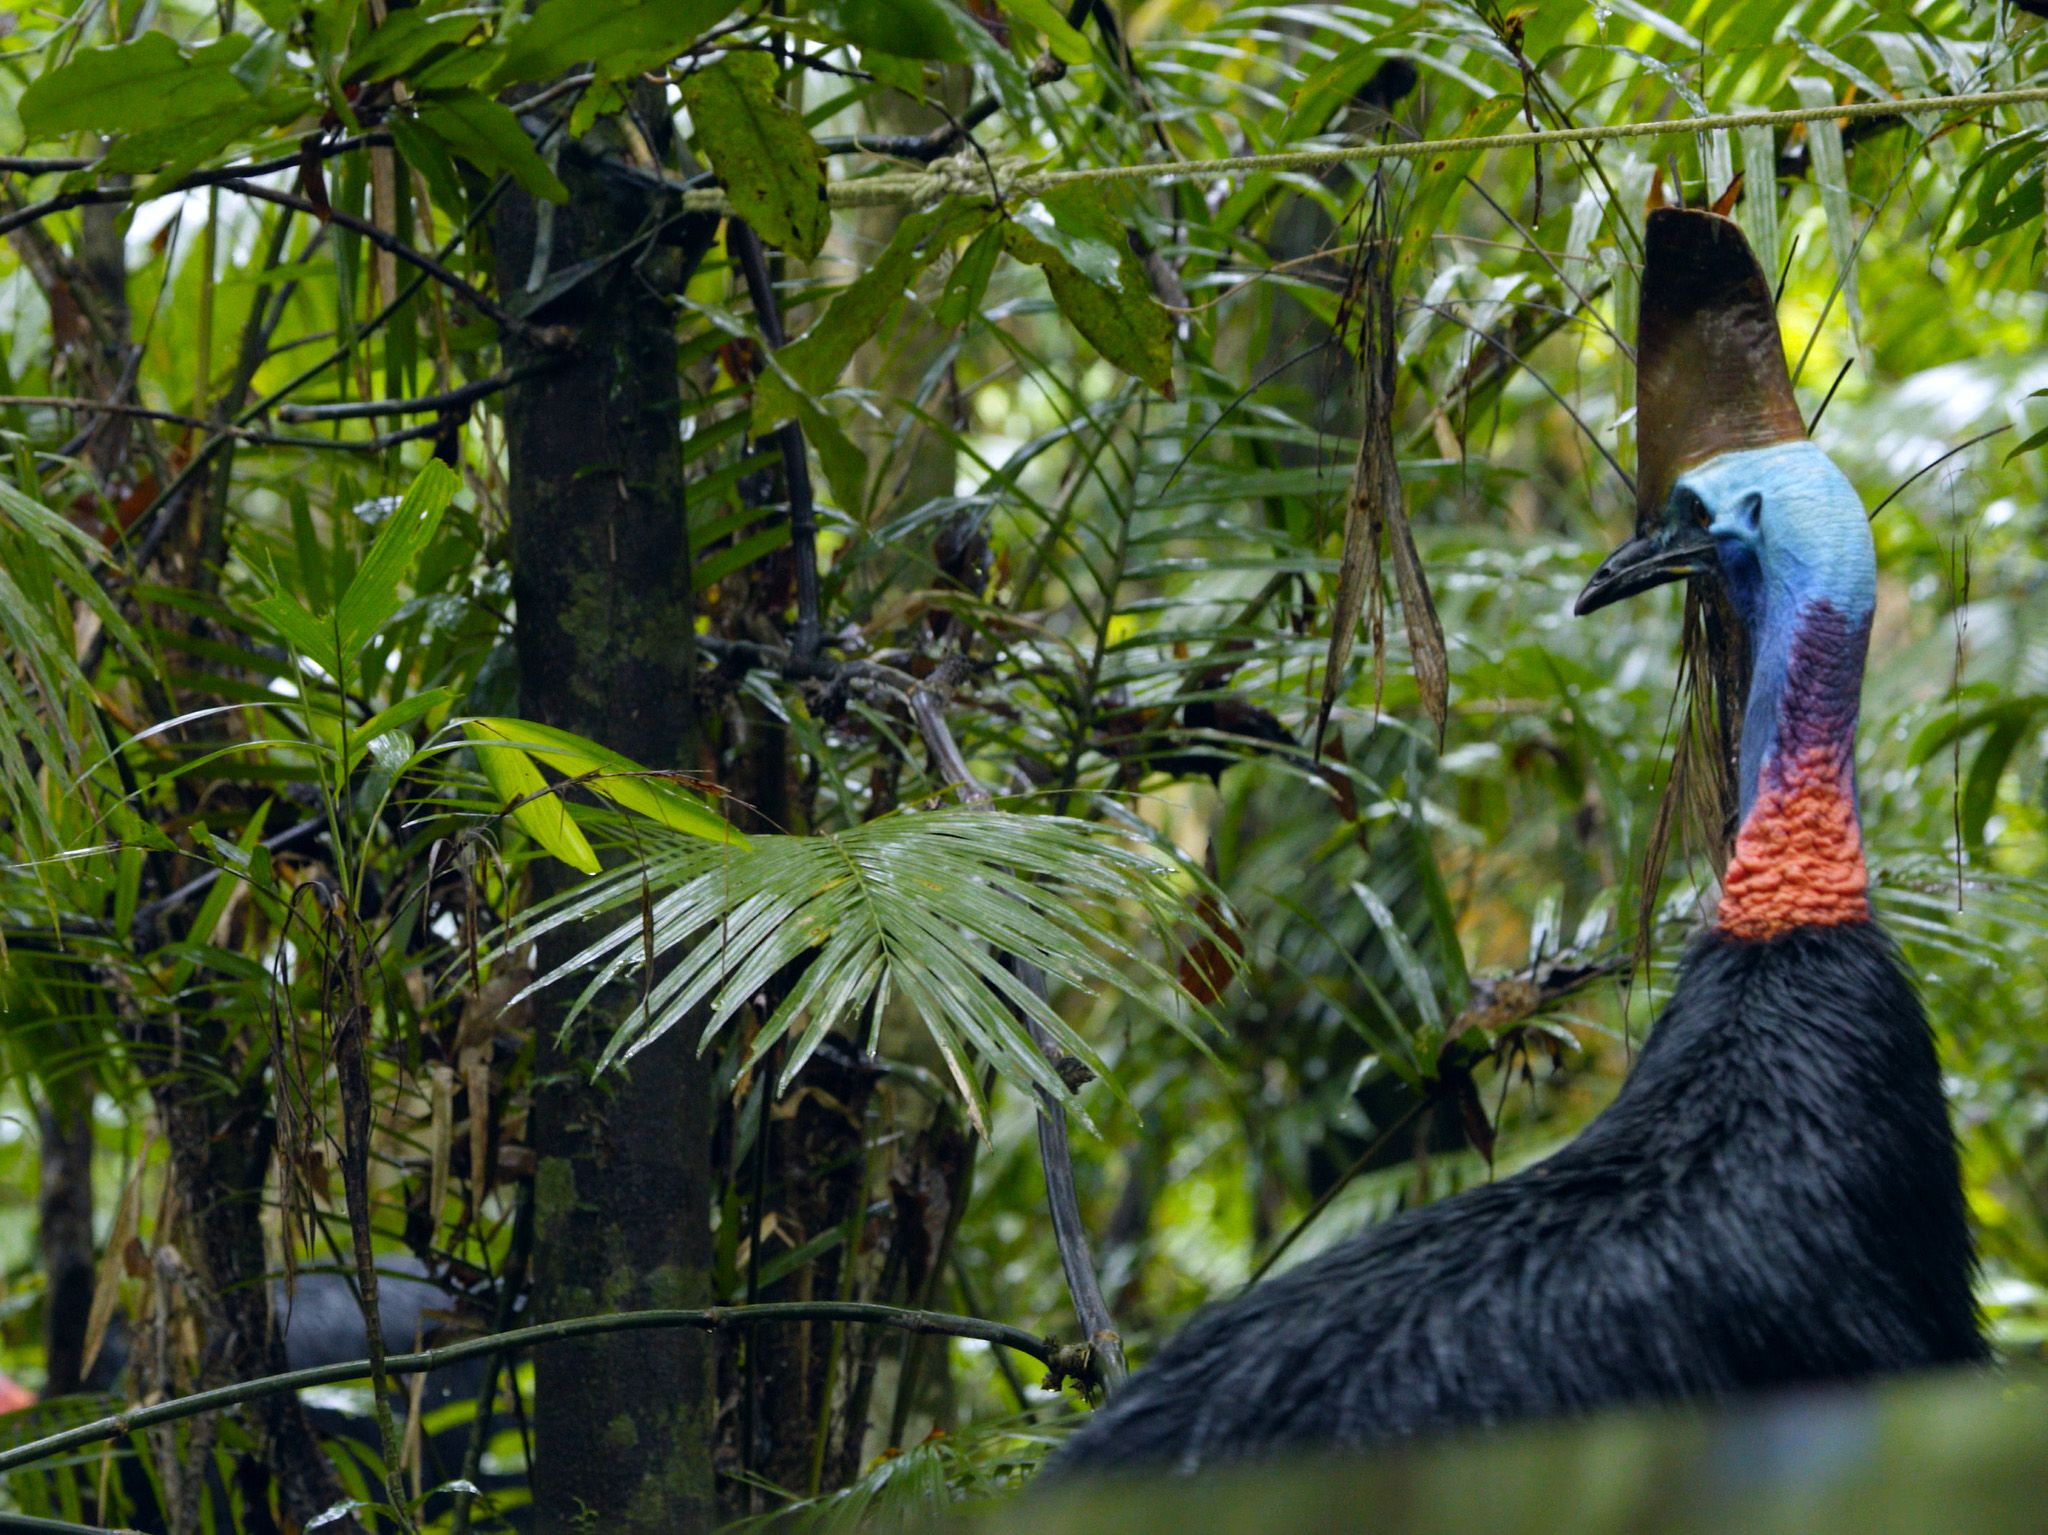 Big Bertha in s confrontation with a male cassowary called Taiga, who can be seen in the... [Photo of the day - February 2021]